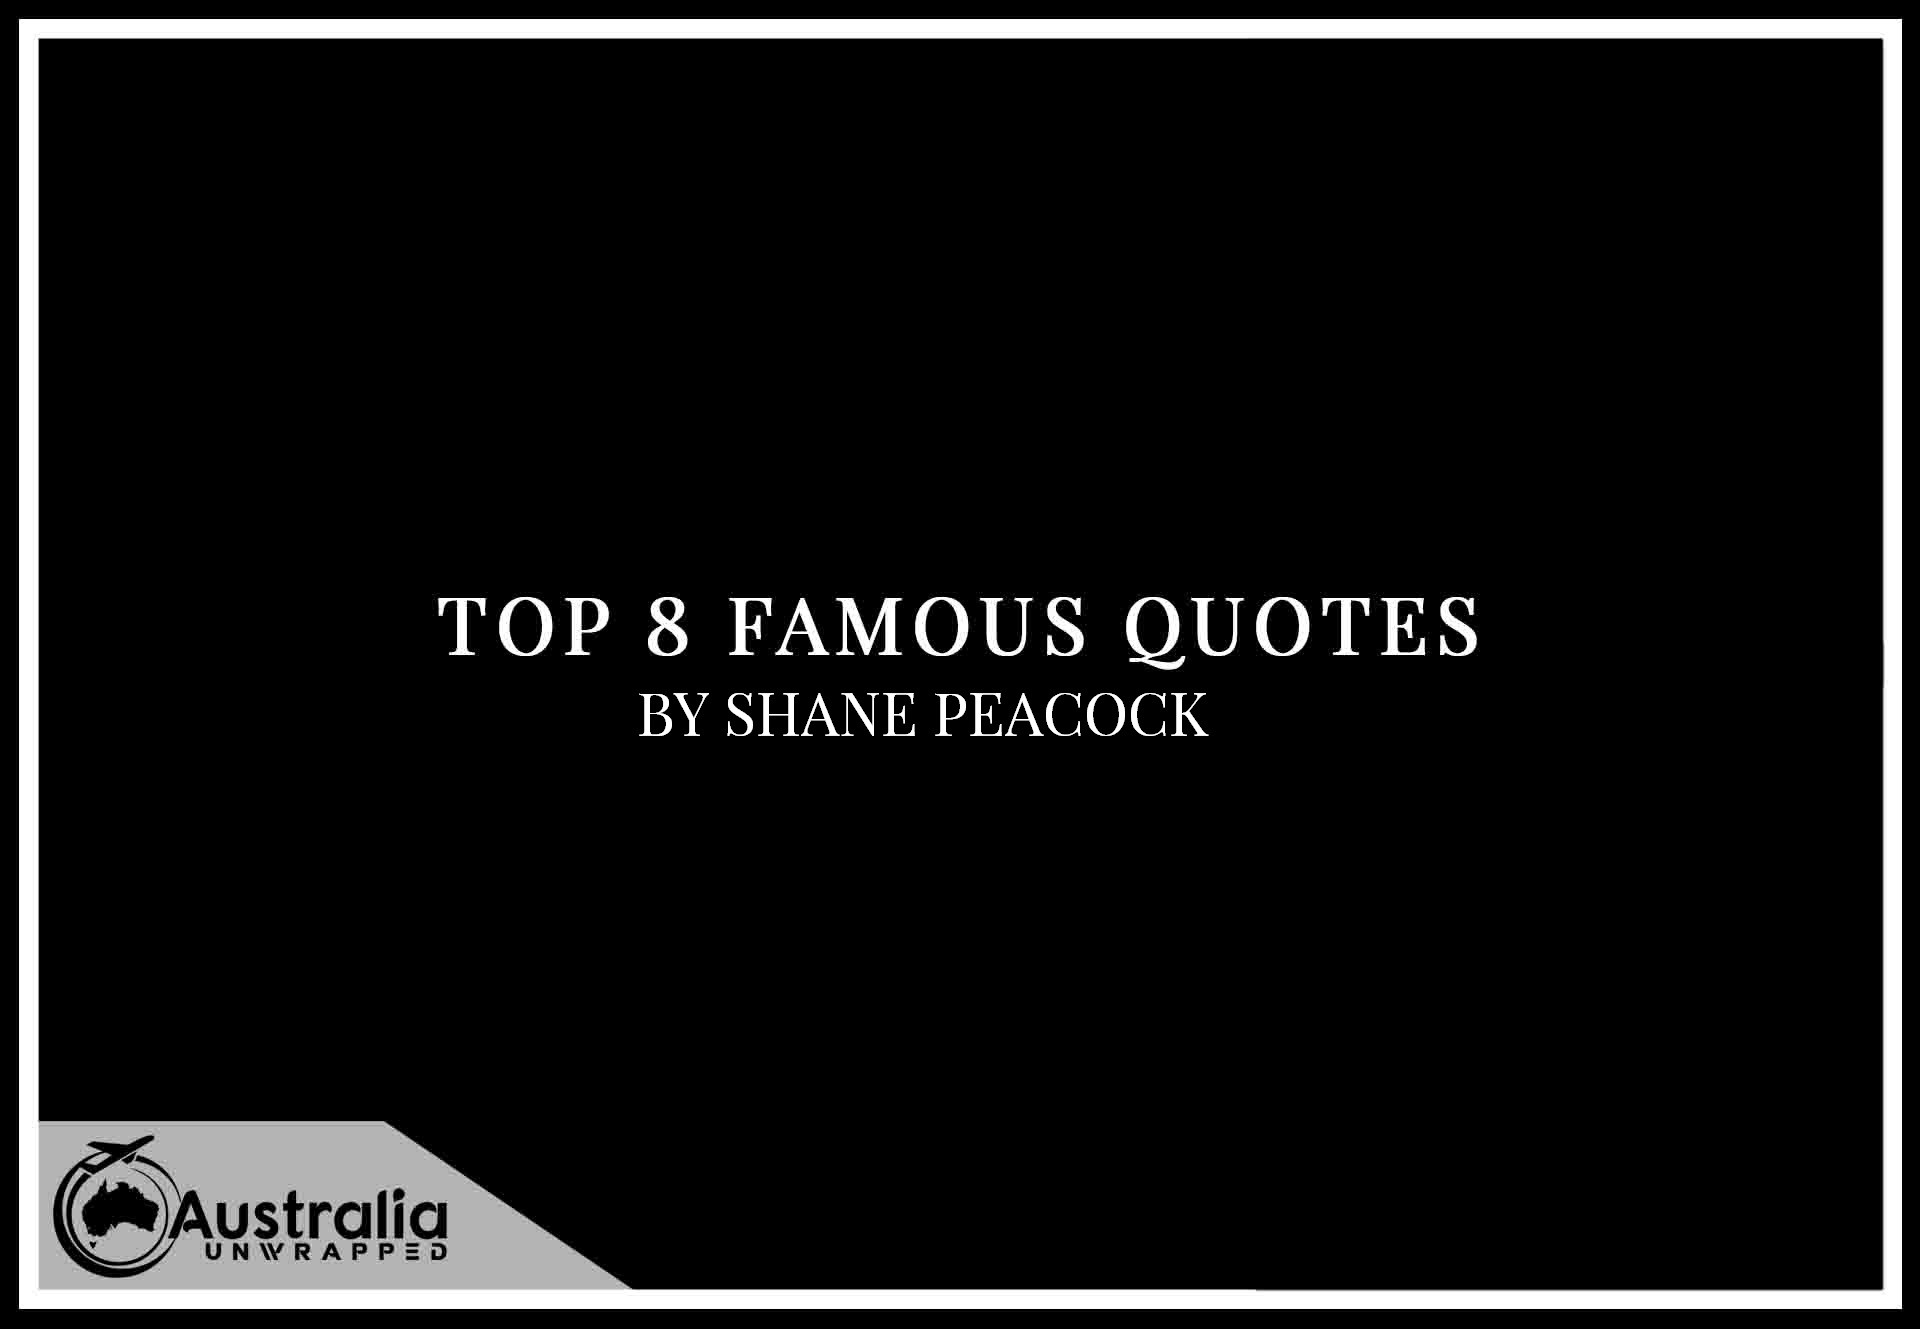 Top 8 Famous Quotes by Author Shane Peacock